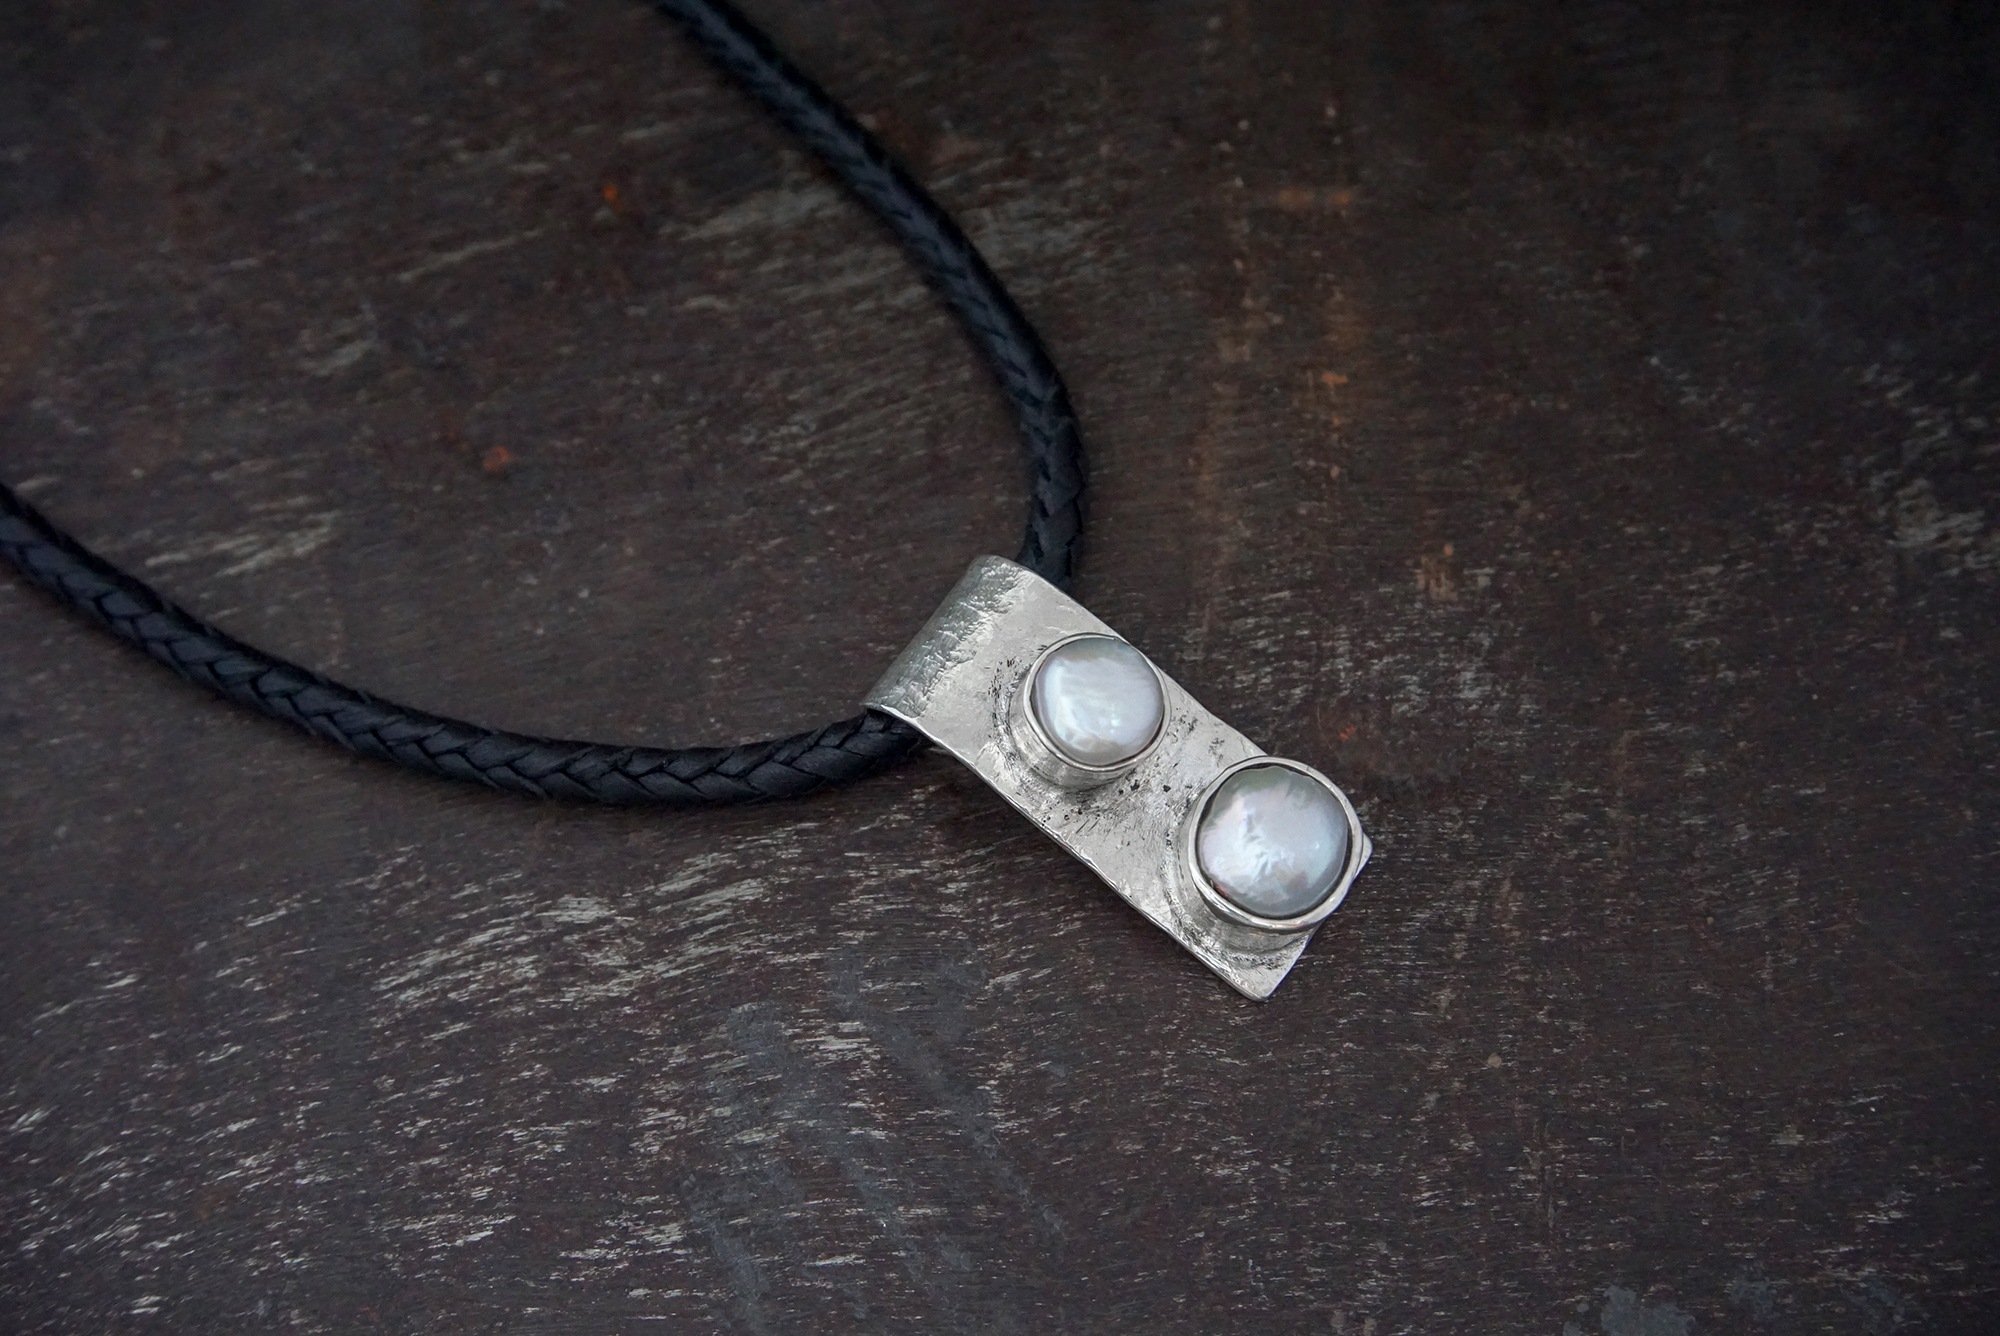 pearl pendant on leather